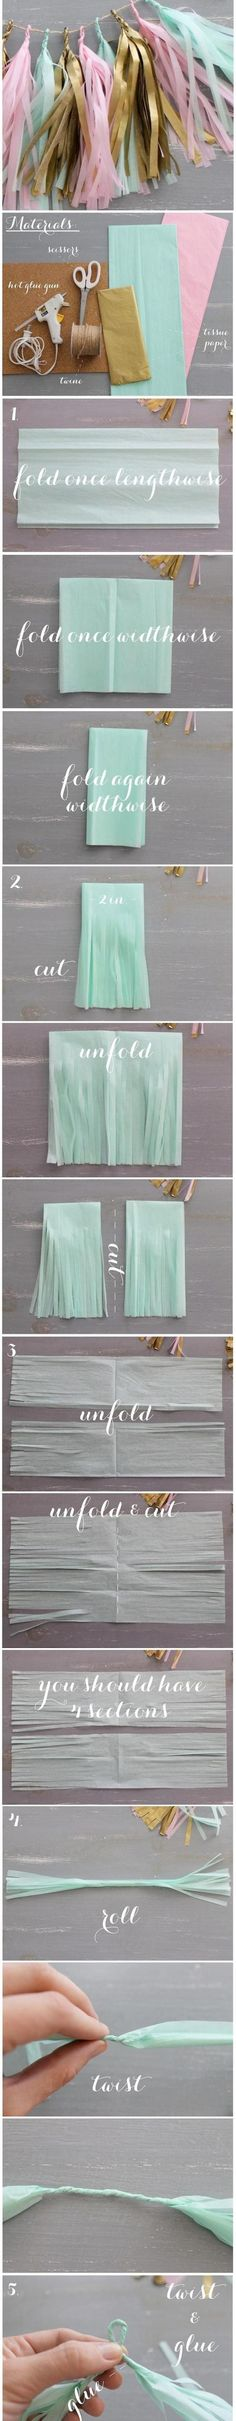 DIY Tassel Garland in pretty pastels. Perfect for any celebration from baby showers to first birthday parties.::